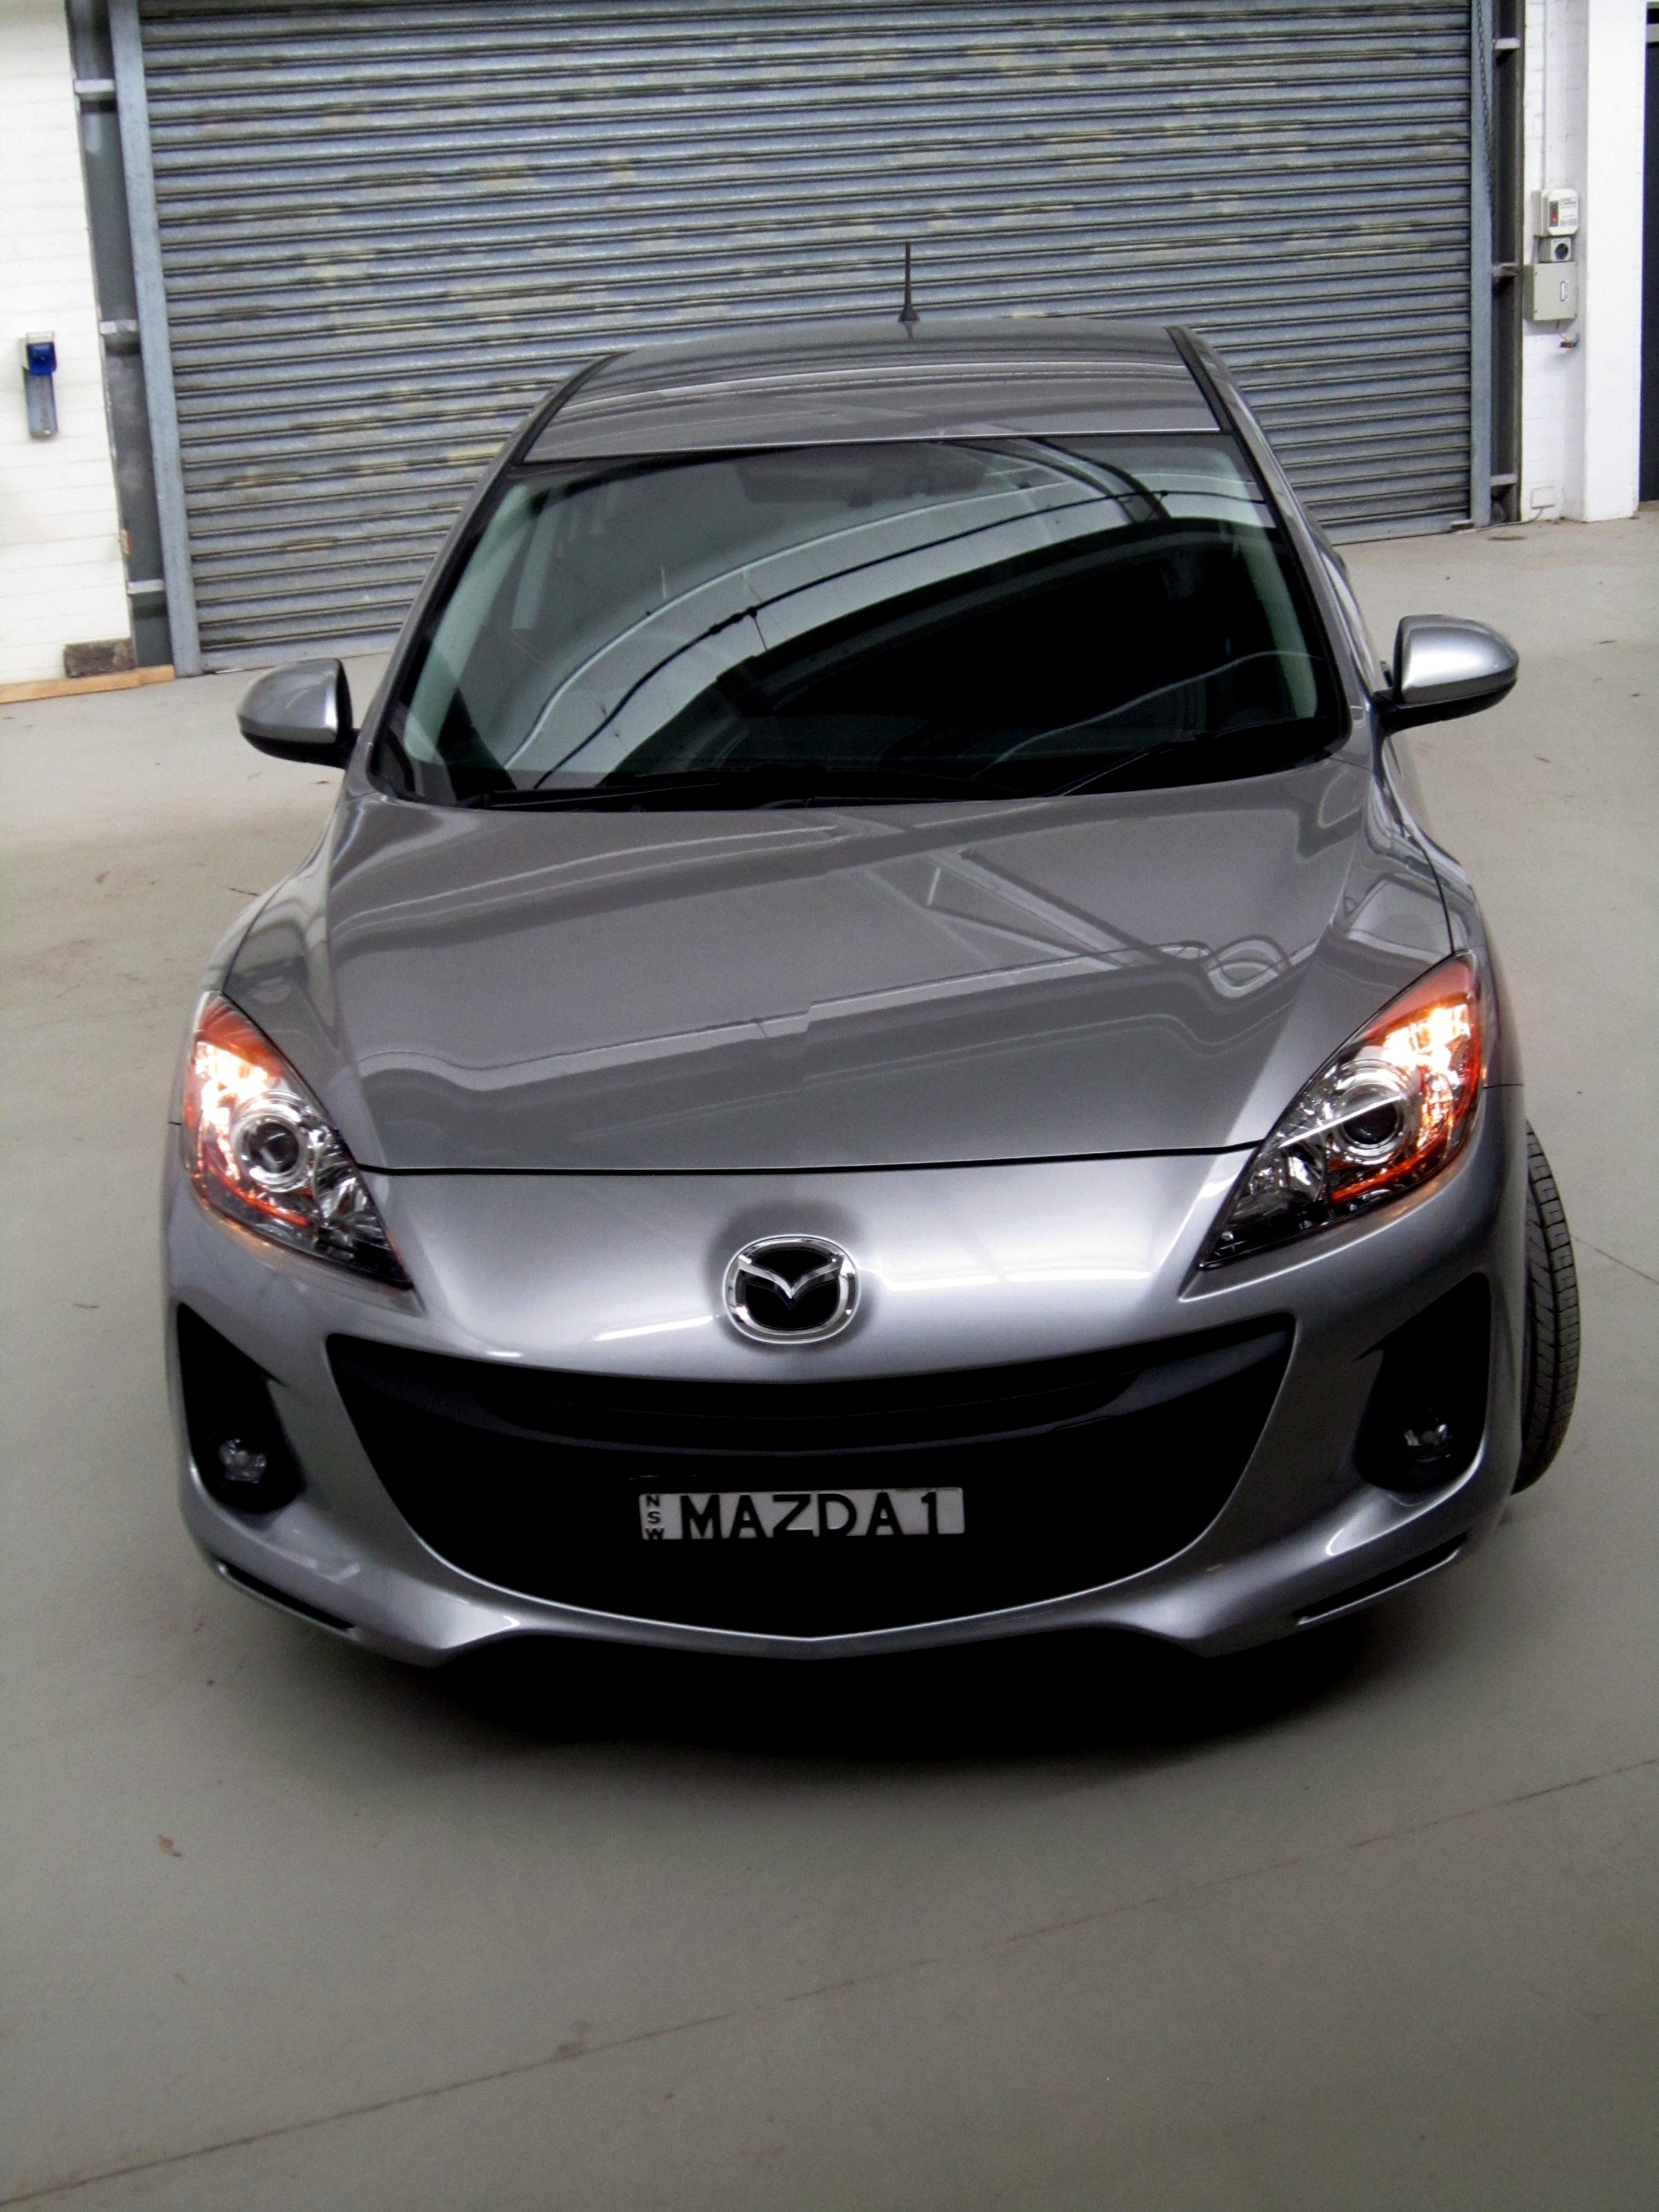 2012 mazda 3 photos informations articles. Black Bedroom Furniture Sets. Home Design Ideas